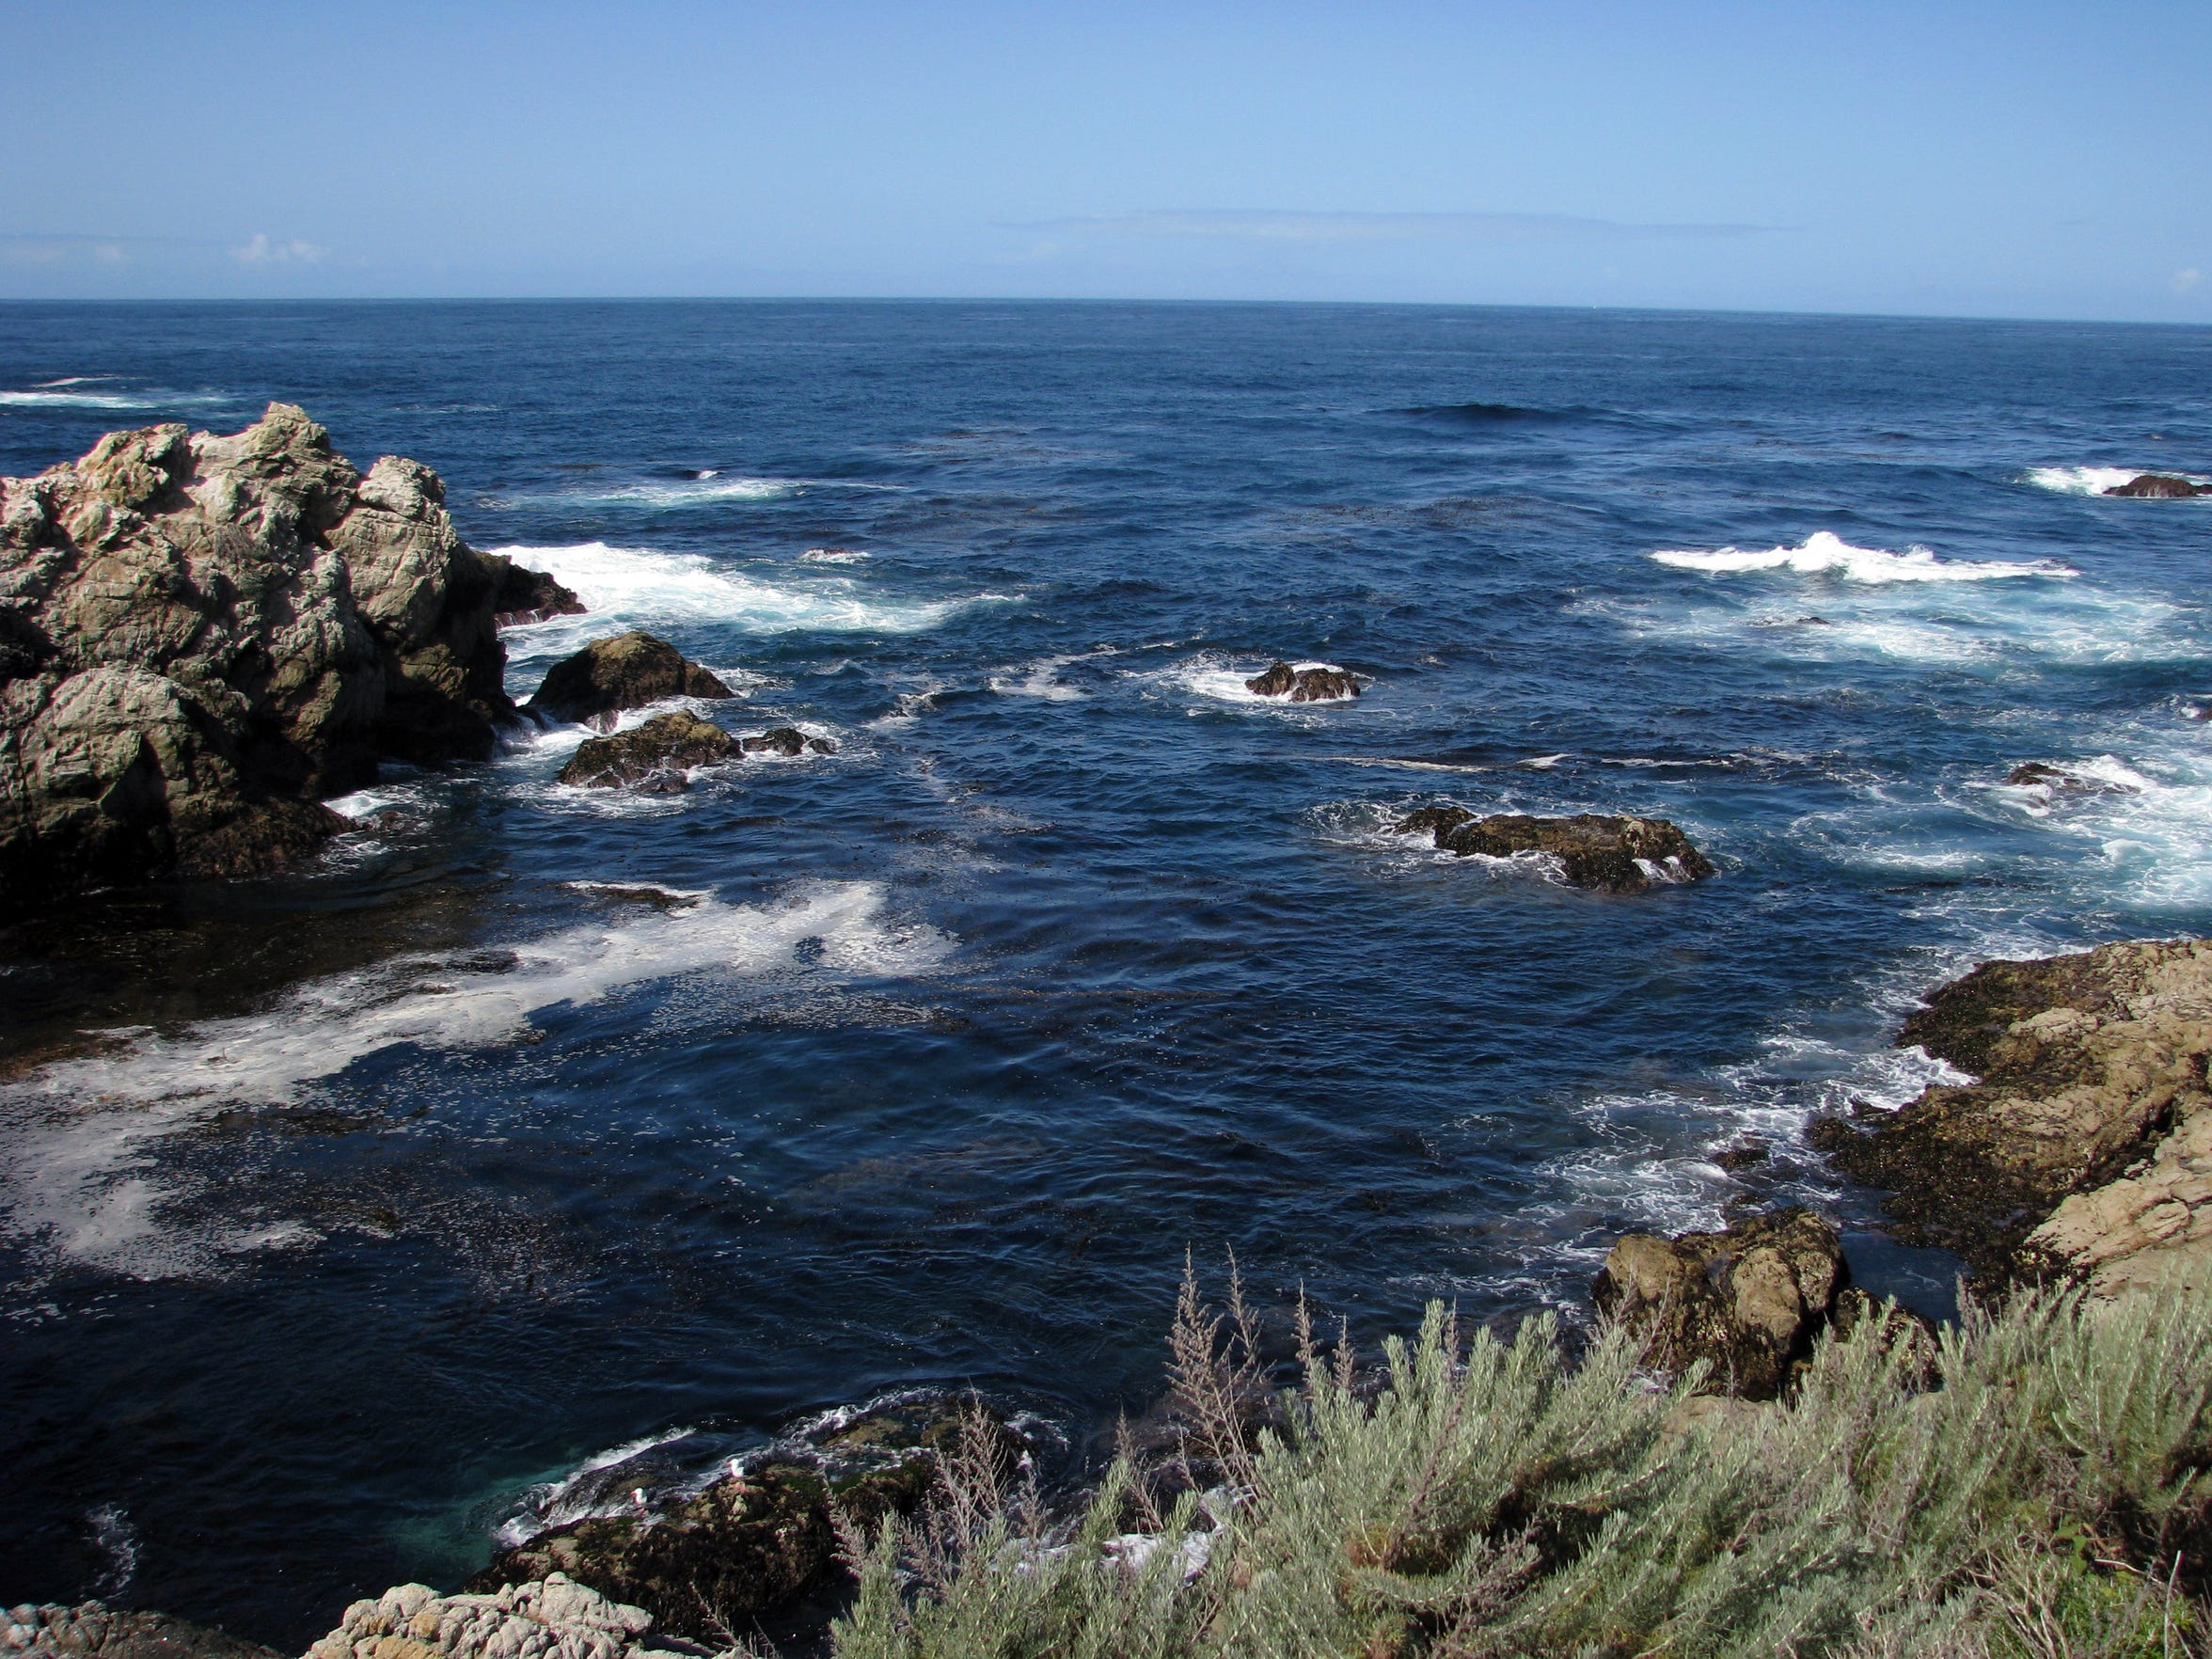 There are plenty of scenic views at Point Lobos south